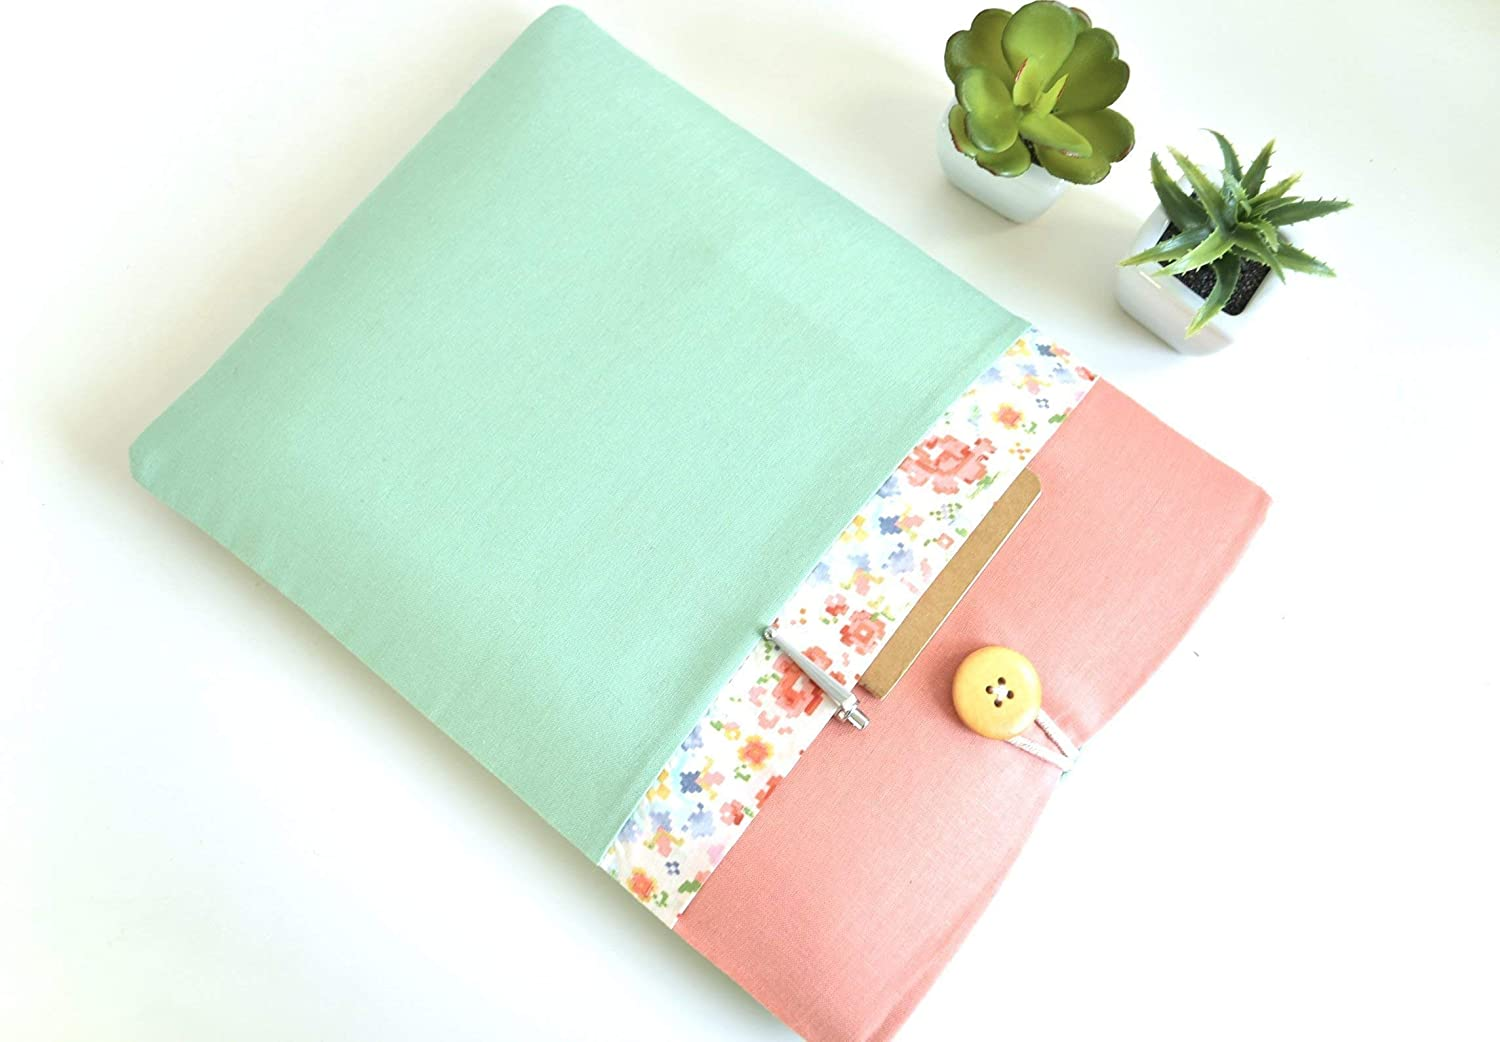 Floral Mint and Mango 11, 12, 13-13.3, 14, 15-15.6 inch Notebook Computer Case Sized for Any Model